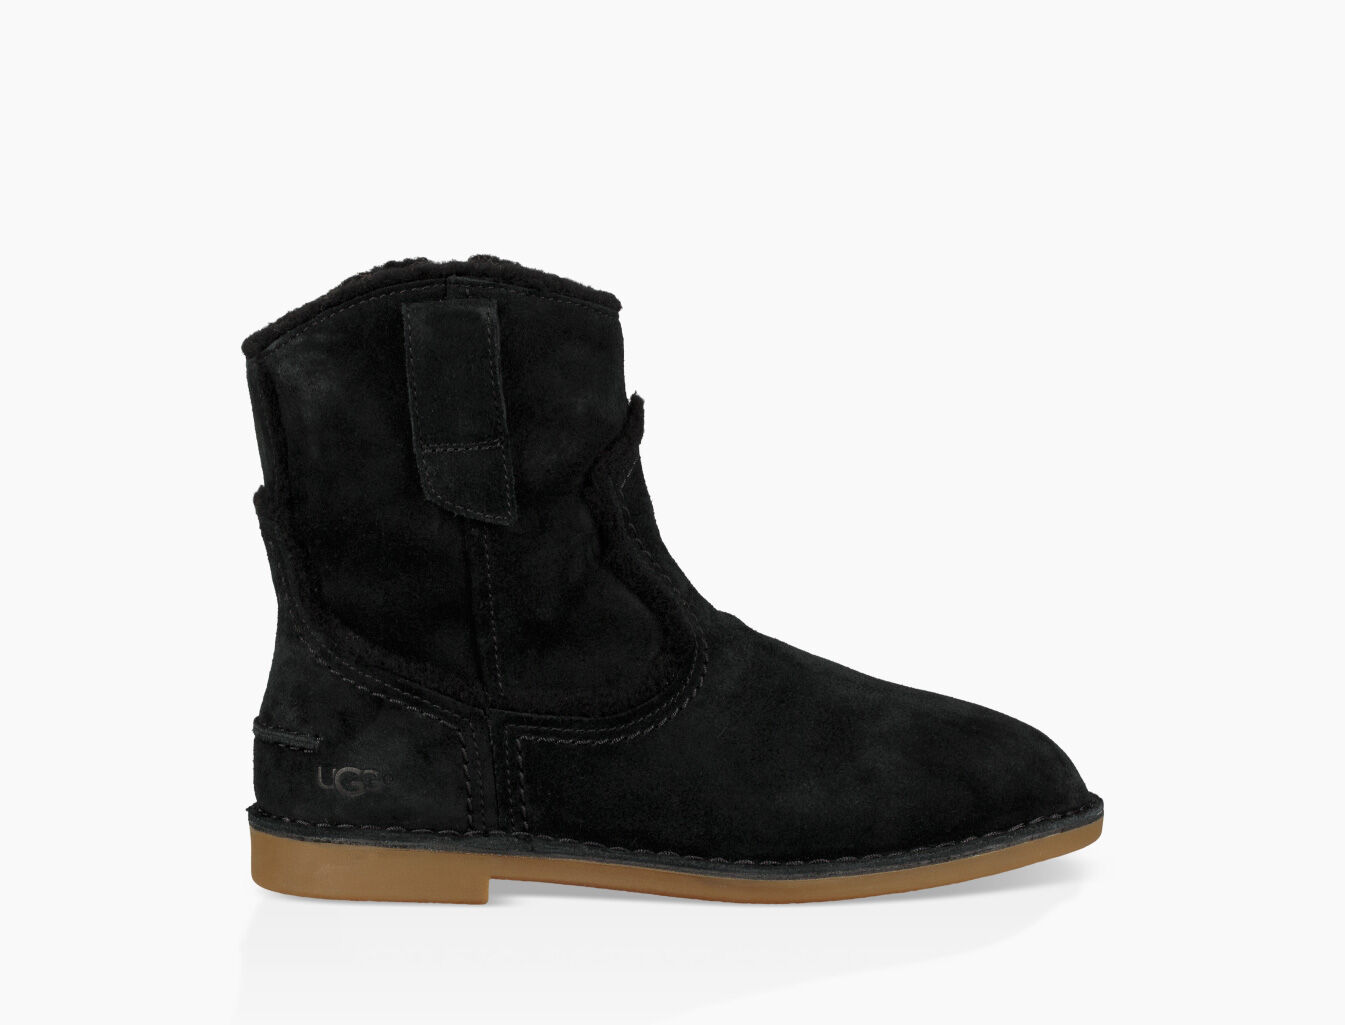 UGG® Catica Ankle Boot for Women   UGG® EU